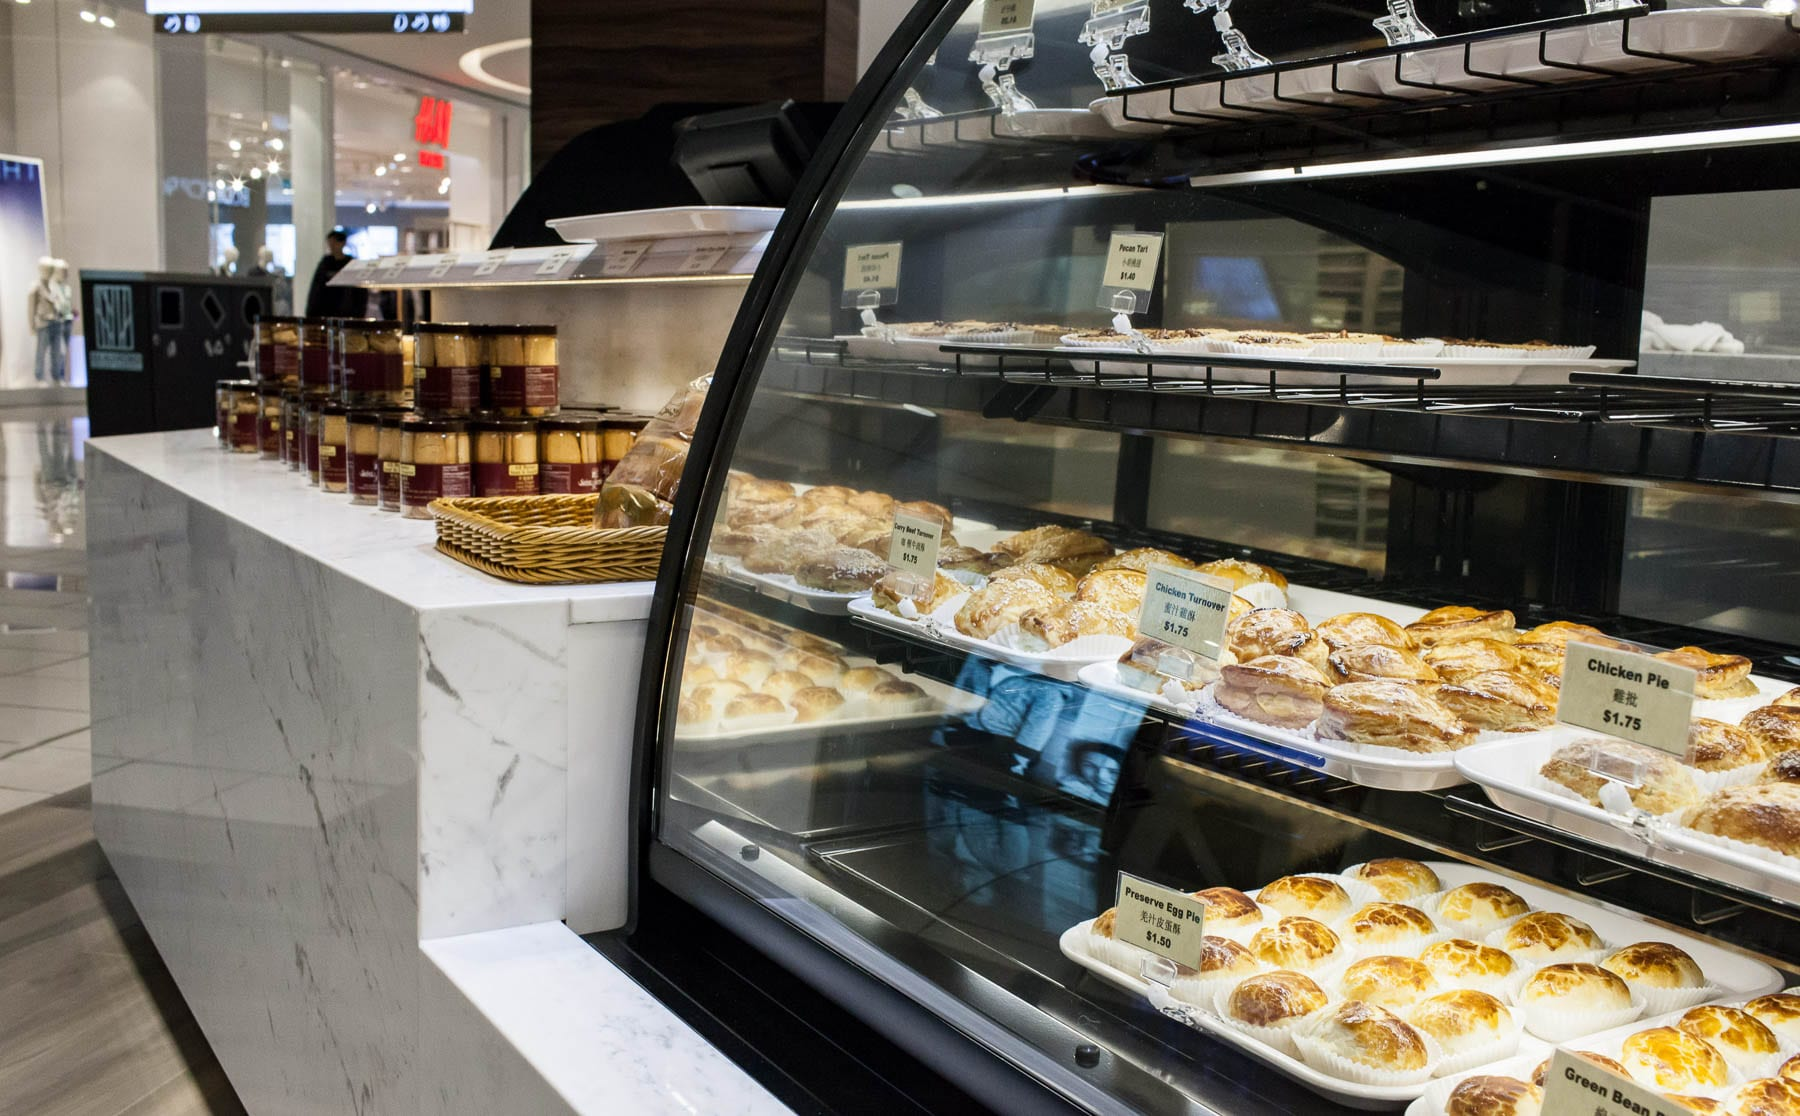 Renovation of Saint Germain Bakery - front sales area with display